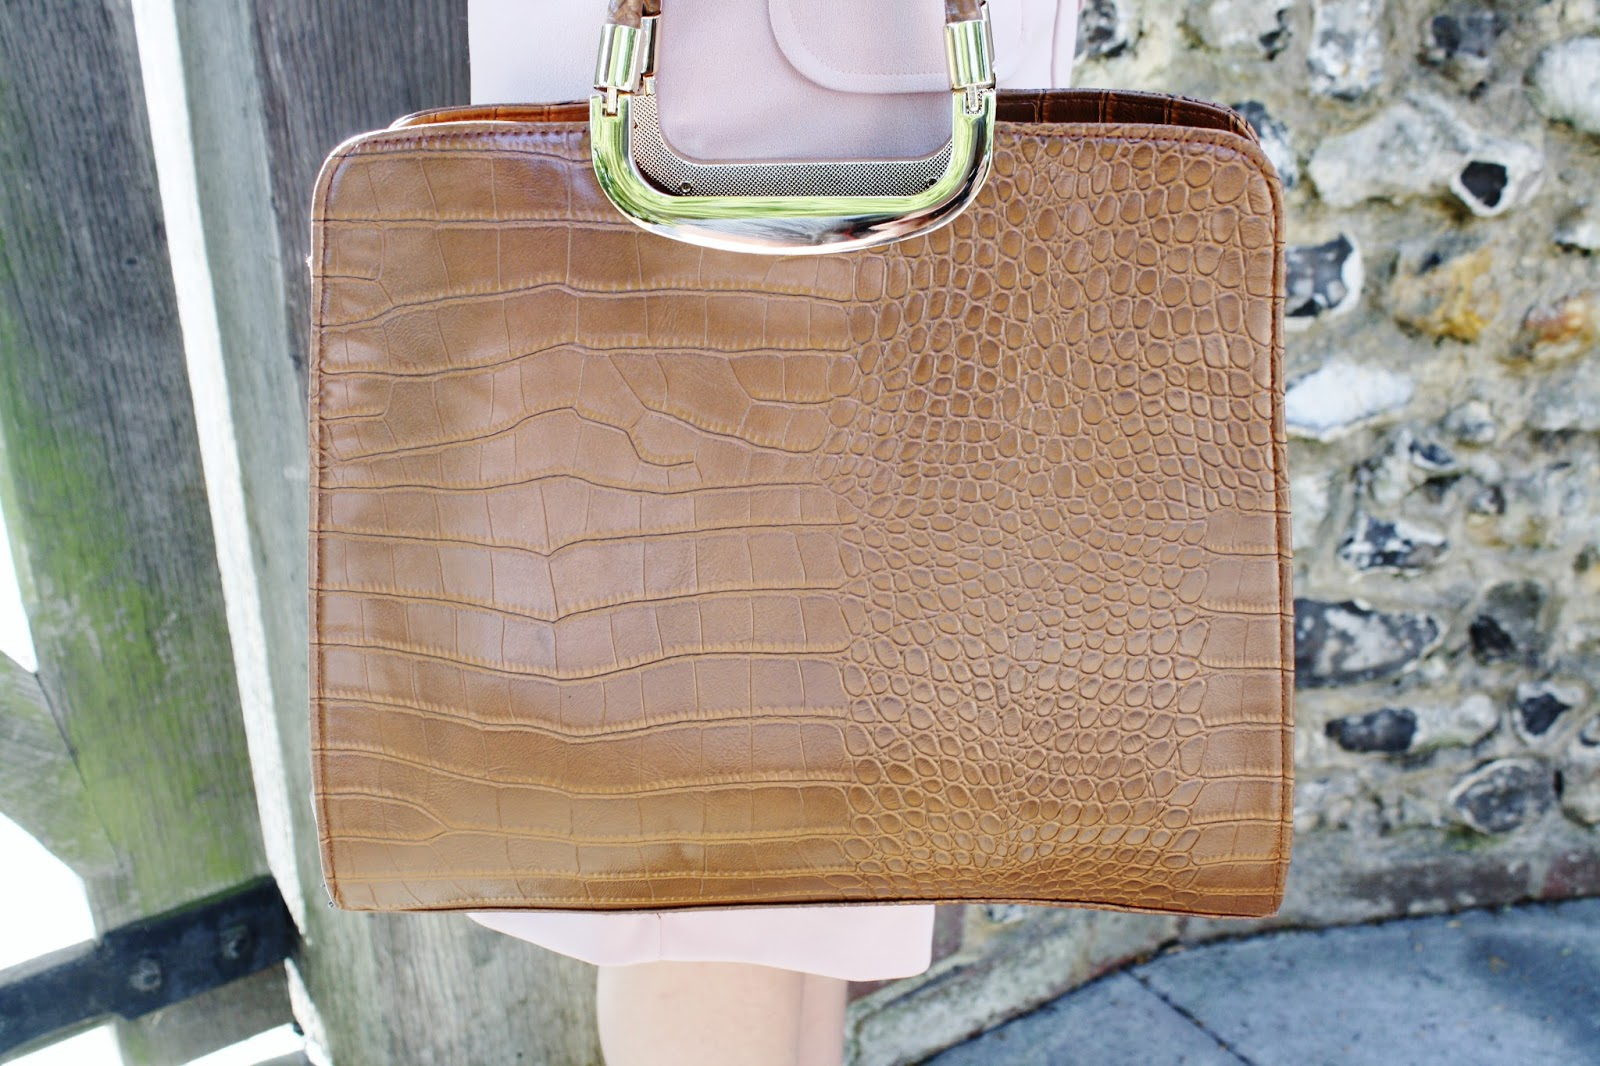 close up of tan moc croc printed handbag from dorothy perkins